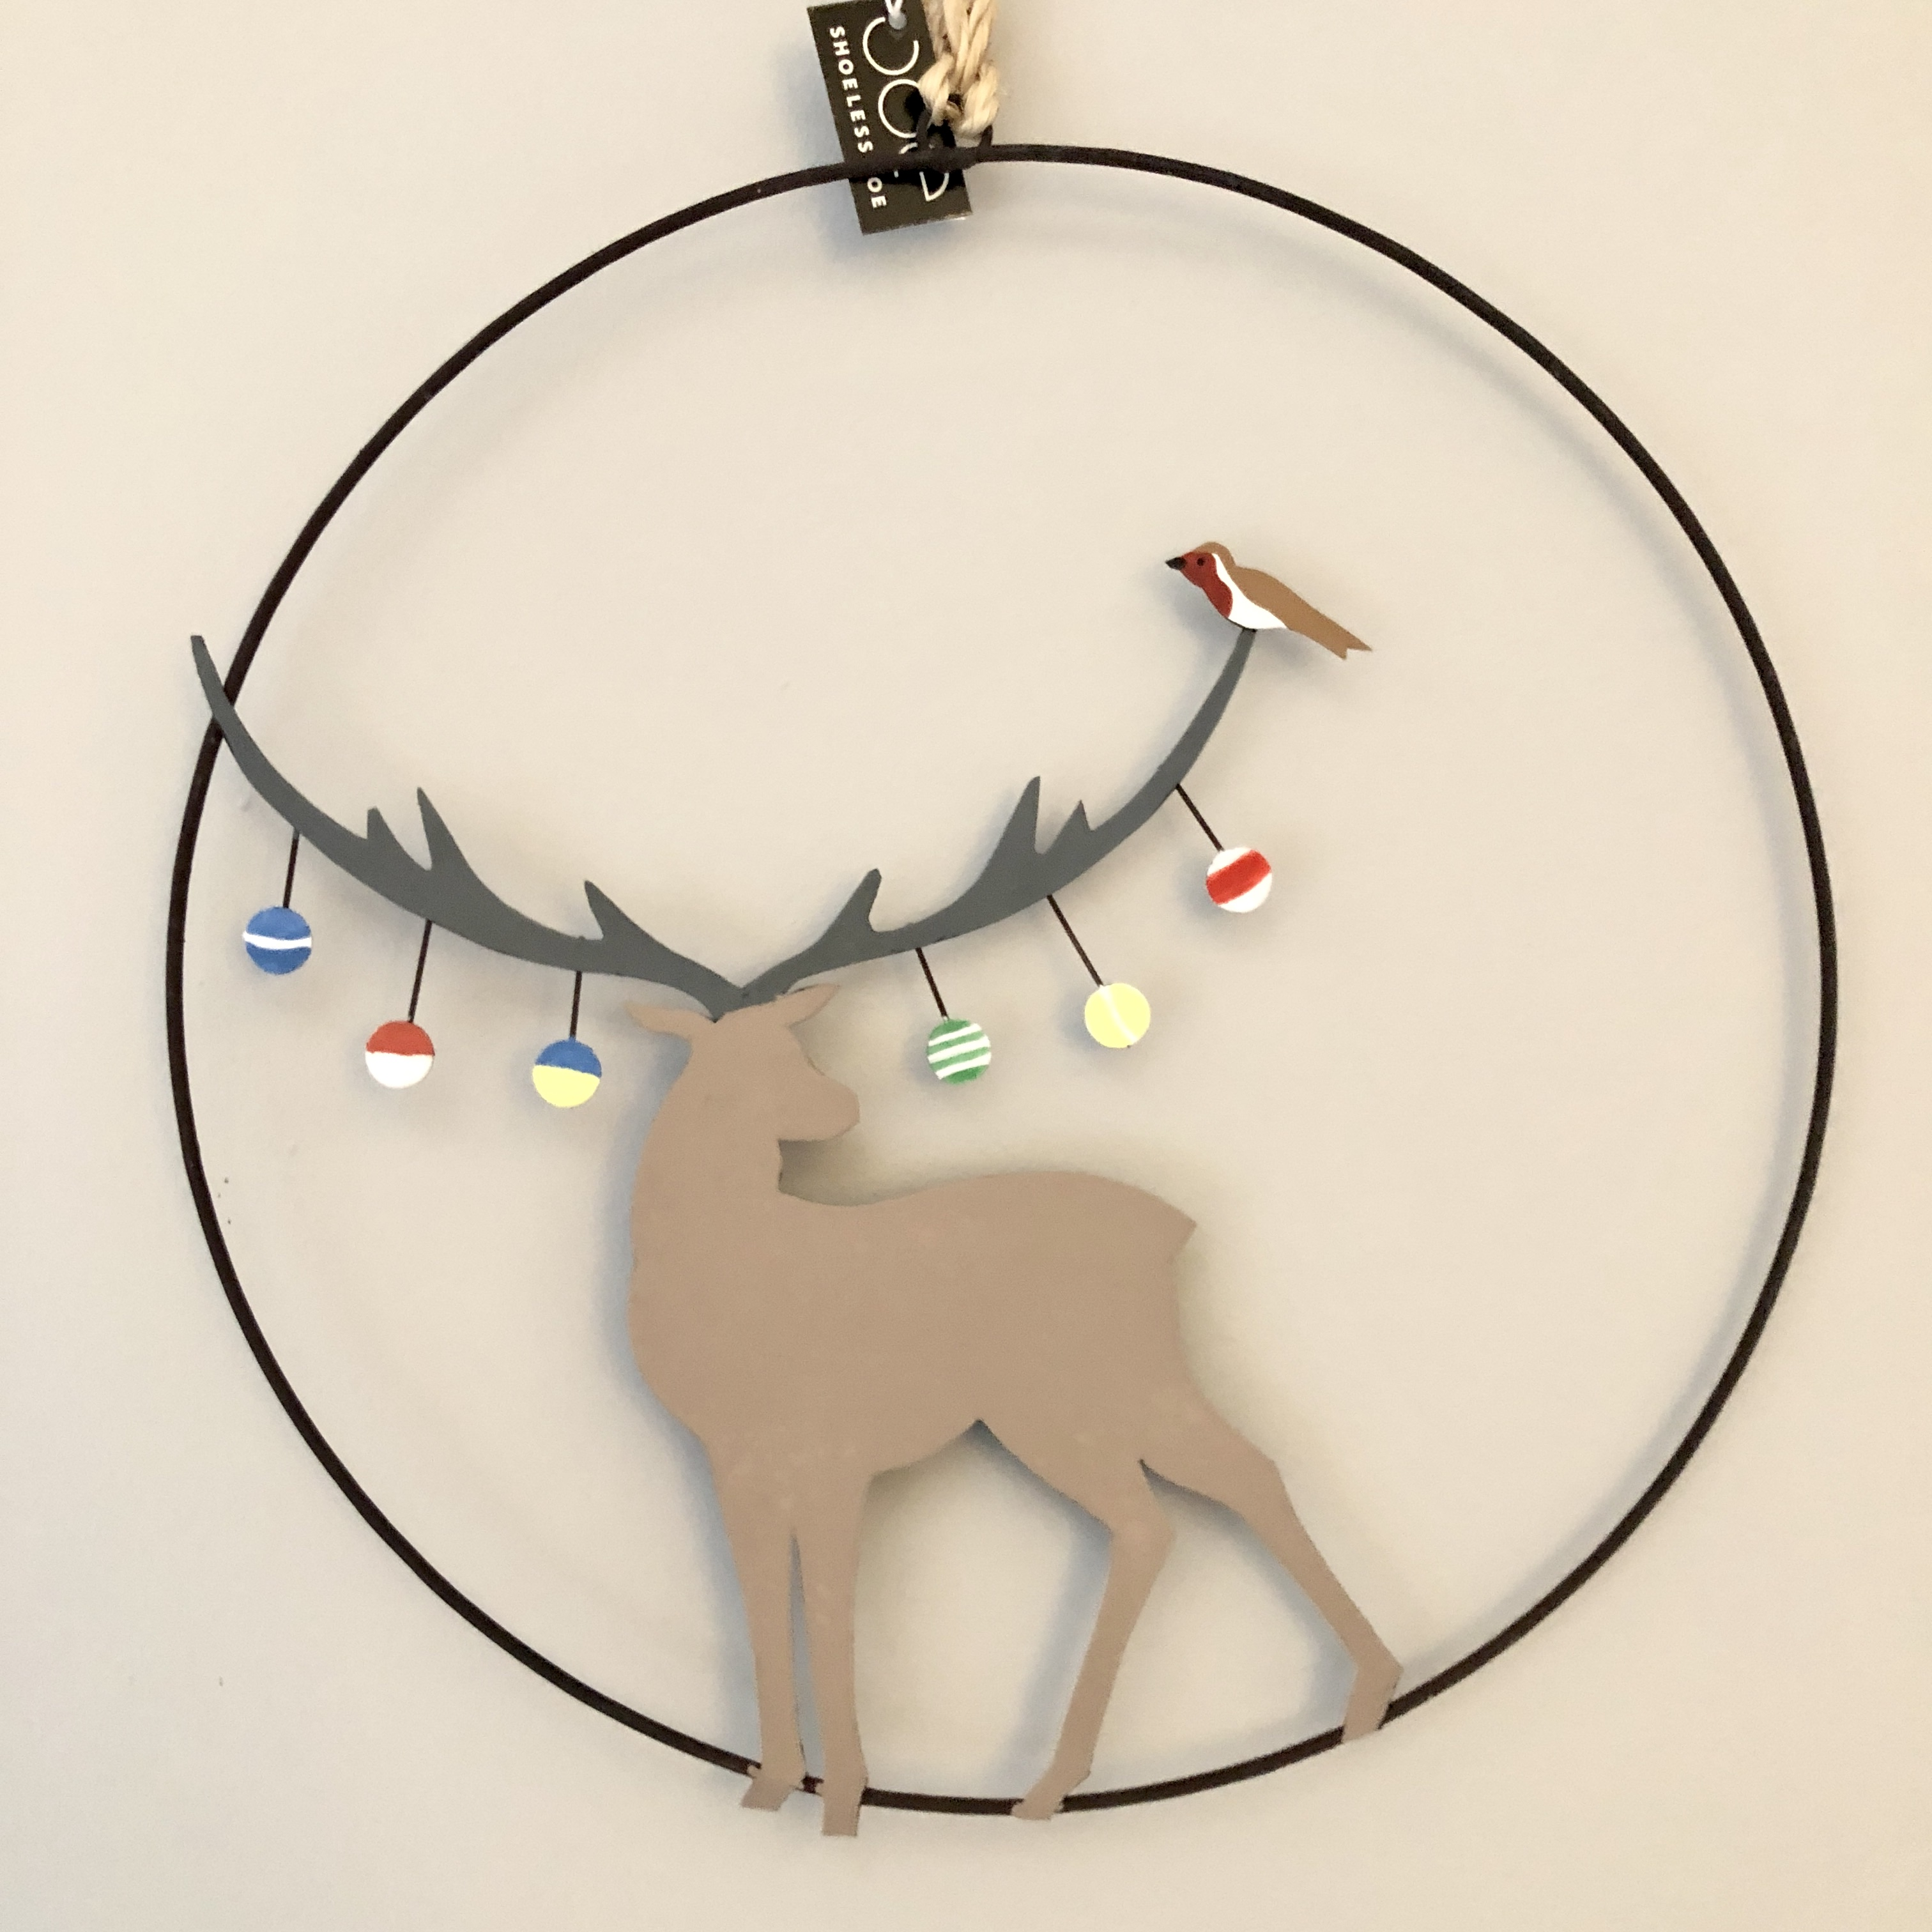 Bauble stag wreath Christmas decoration by shoeless joe